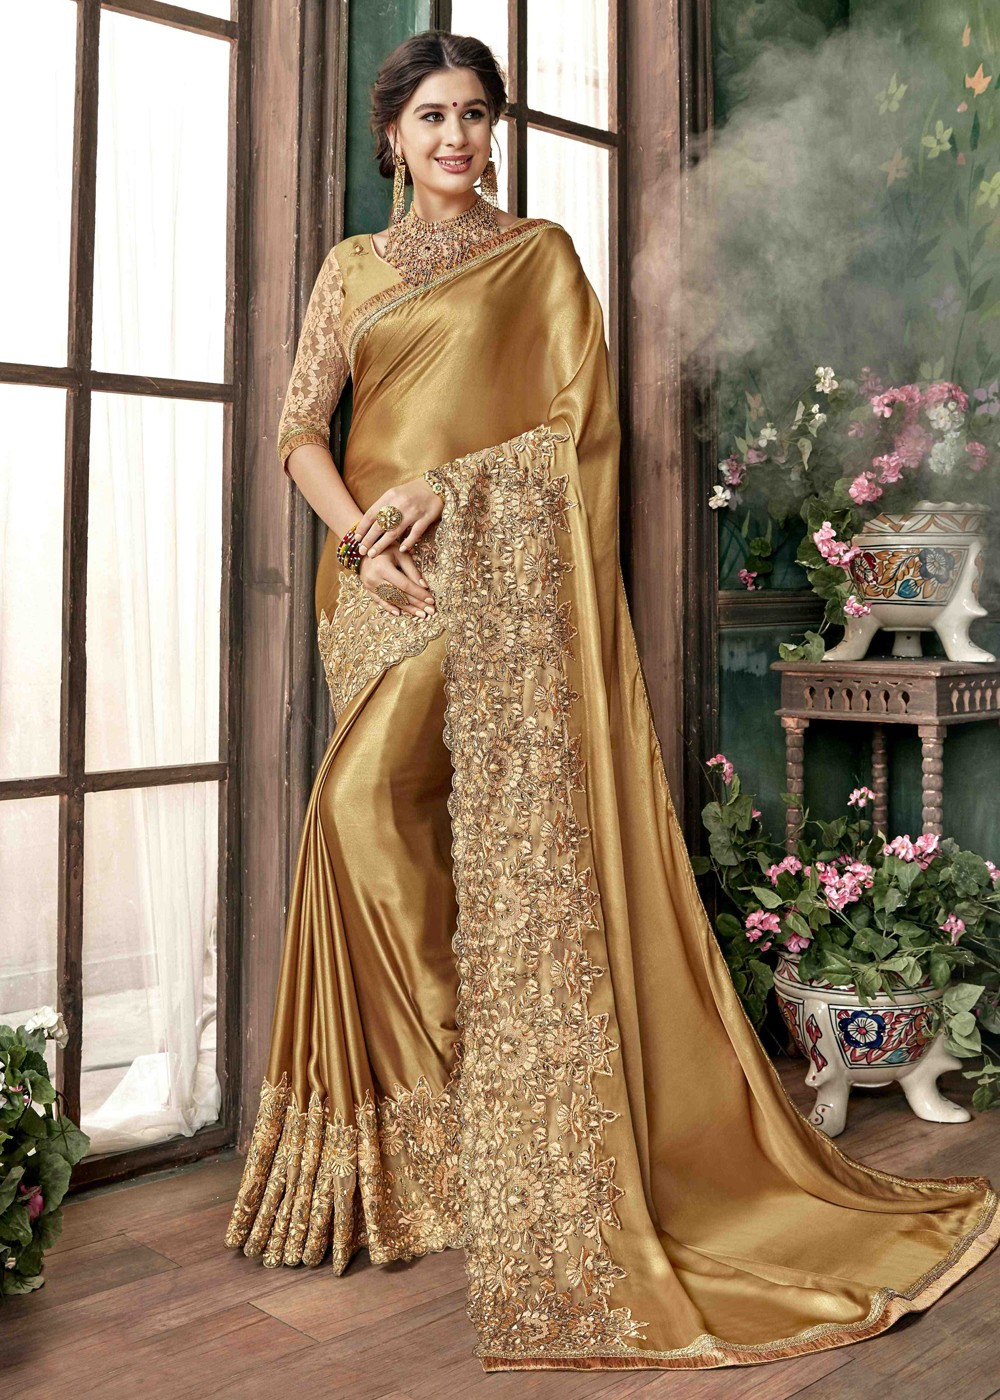 015dbebf0e Golden Embroidered Georgette Saree. Buy Golden Embroidered Georgette Indian  Sarees Collection online USA. Tap to expand